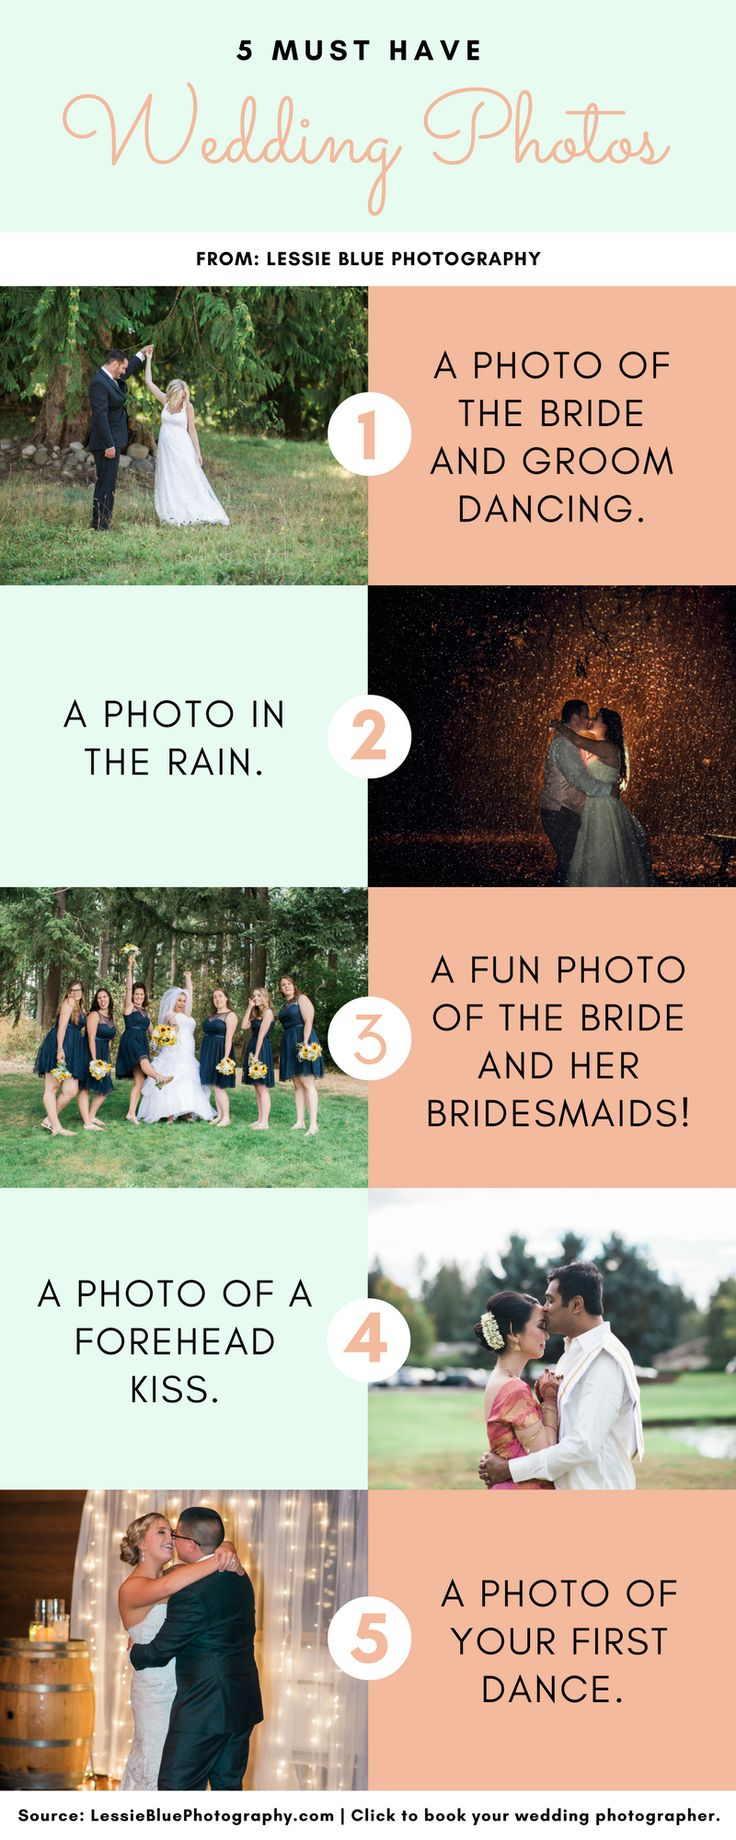 These five photos are must-haves on your wedding day!  #WeddingPhotos